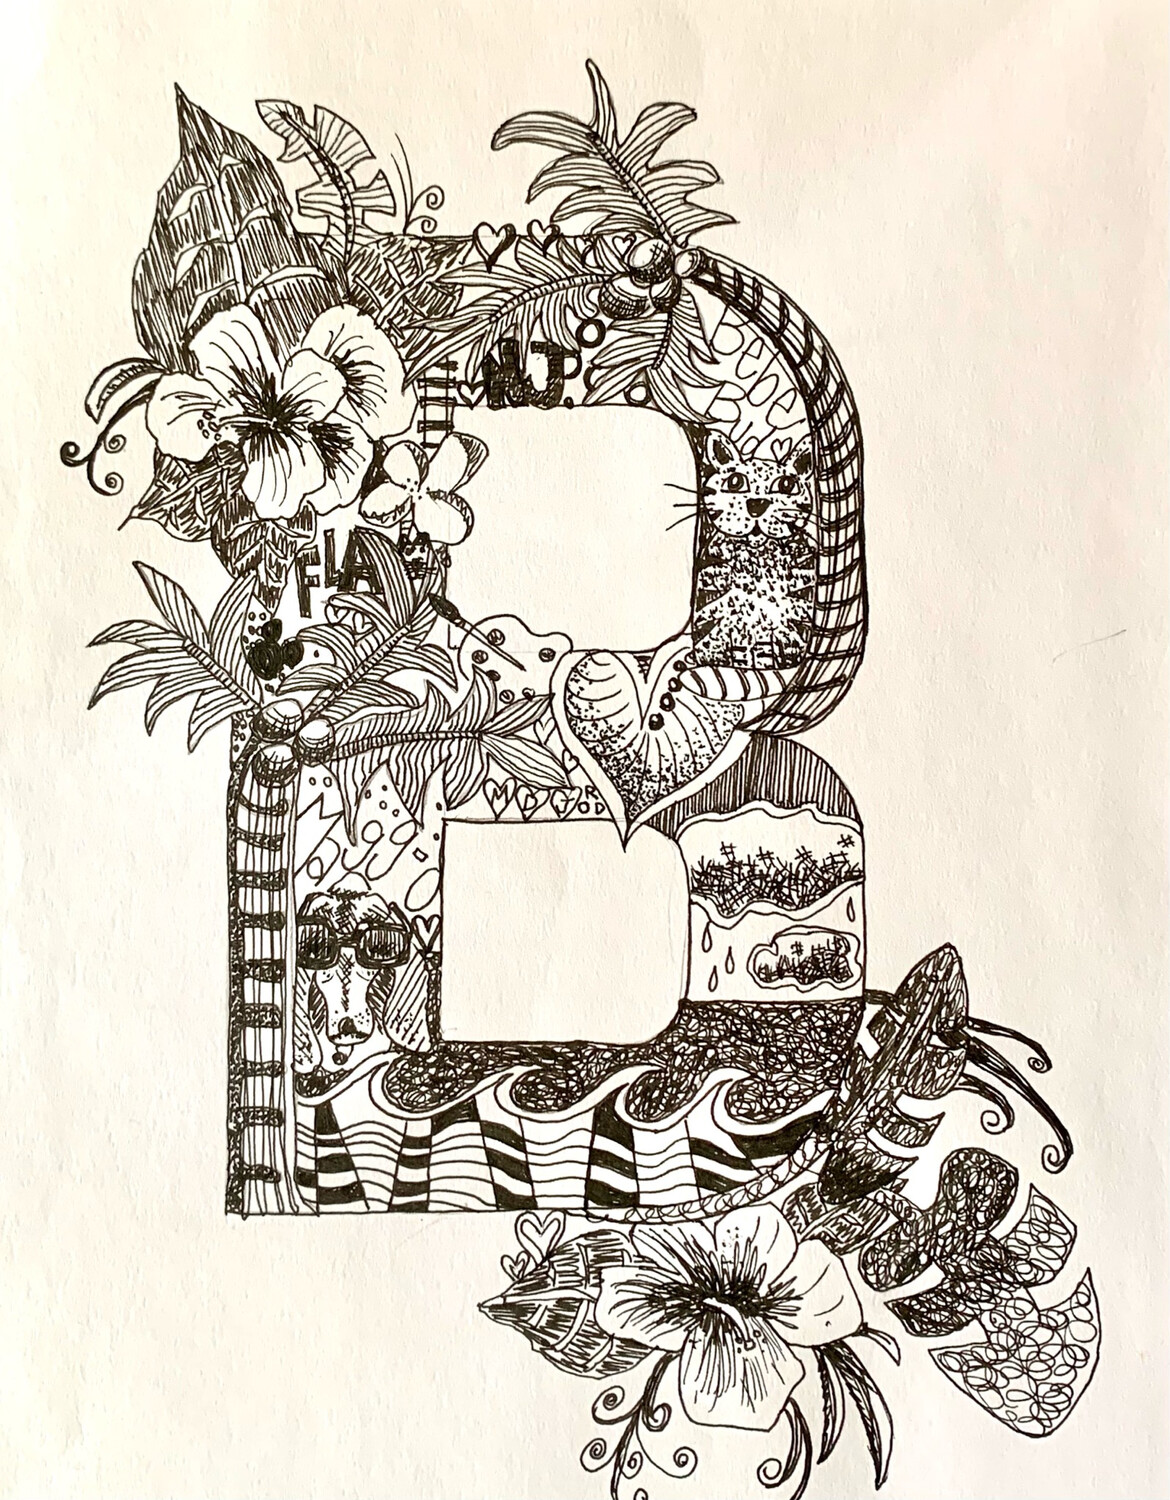 The Letter B - Pen and Ink